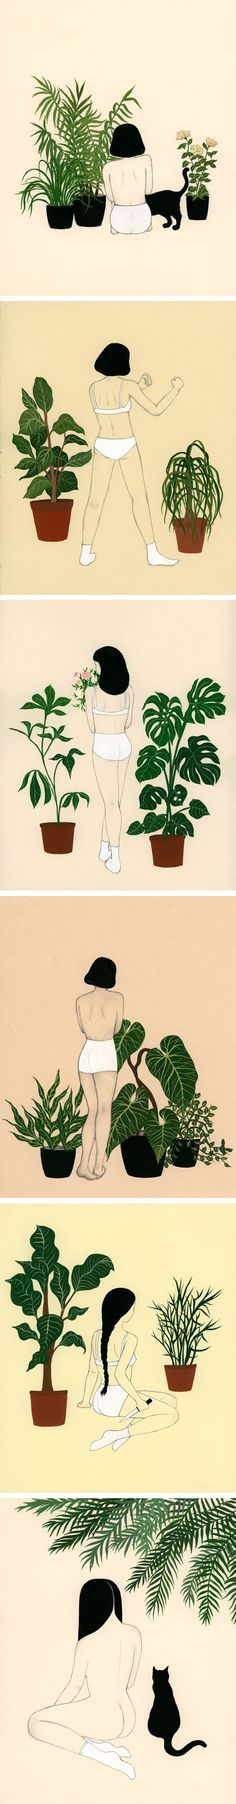 Dan-ah Kim's Illustrations are perfect! Plants, pants and cats - my favourites - funny :D